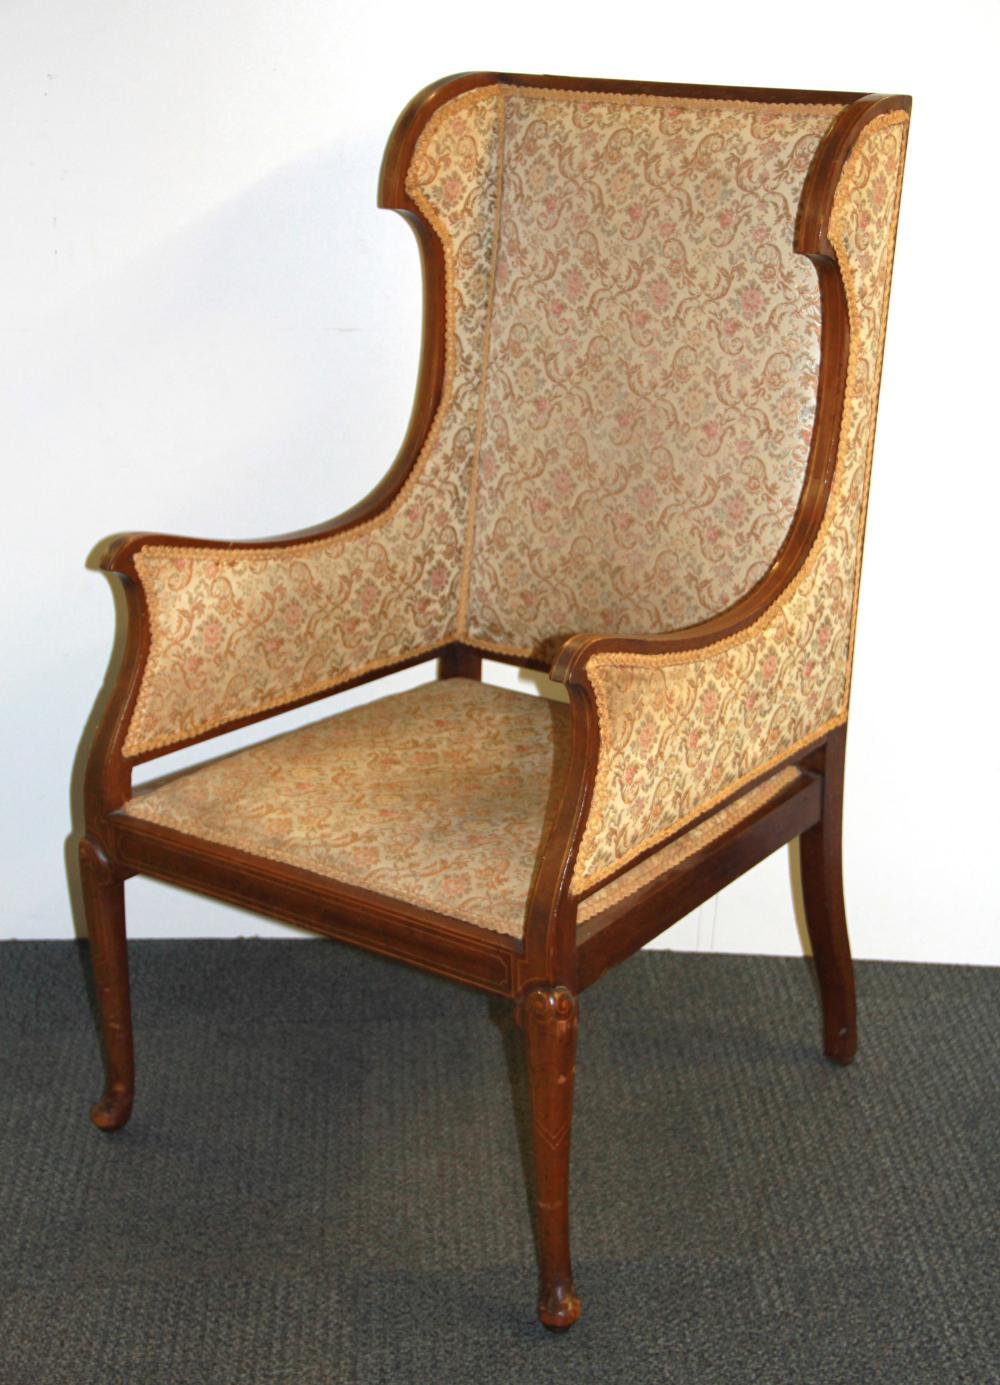 A pretty Edwardian inlaid mahogany armchair.